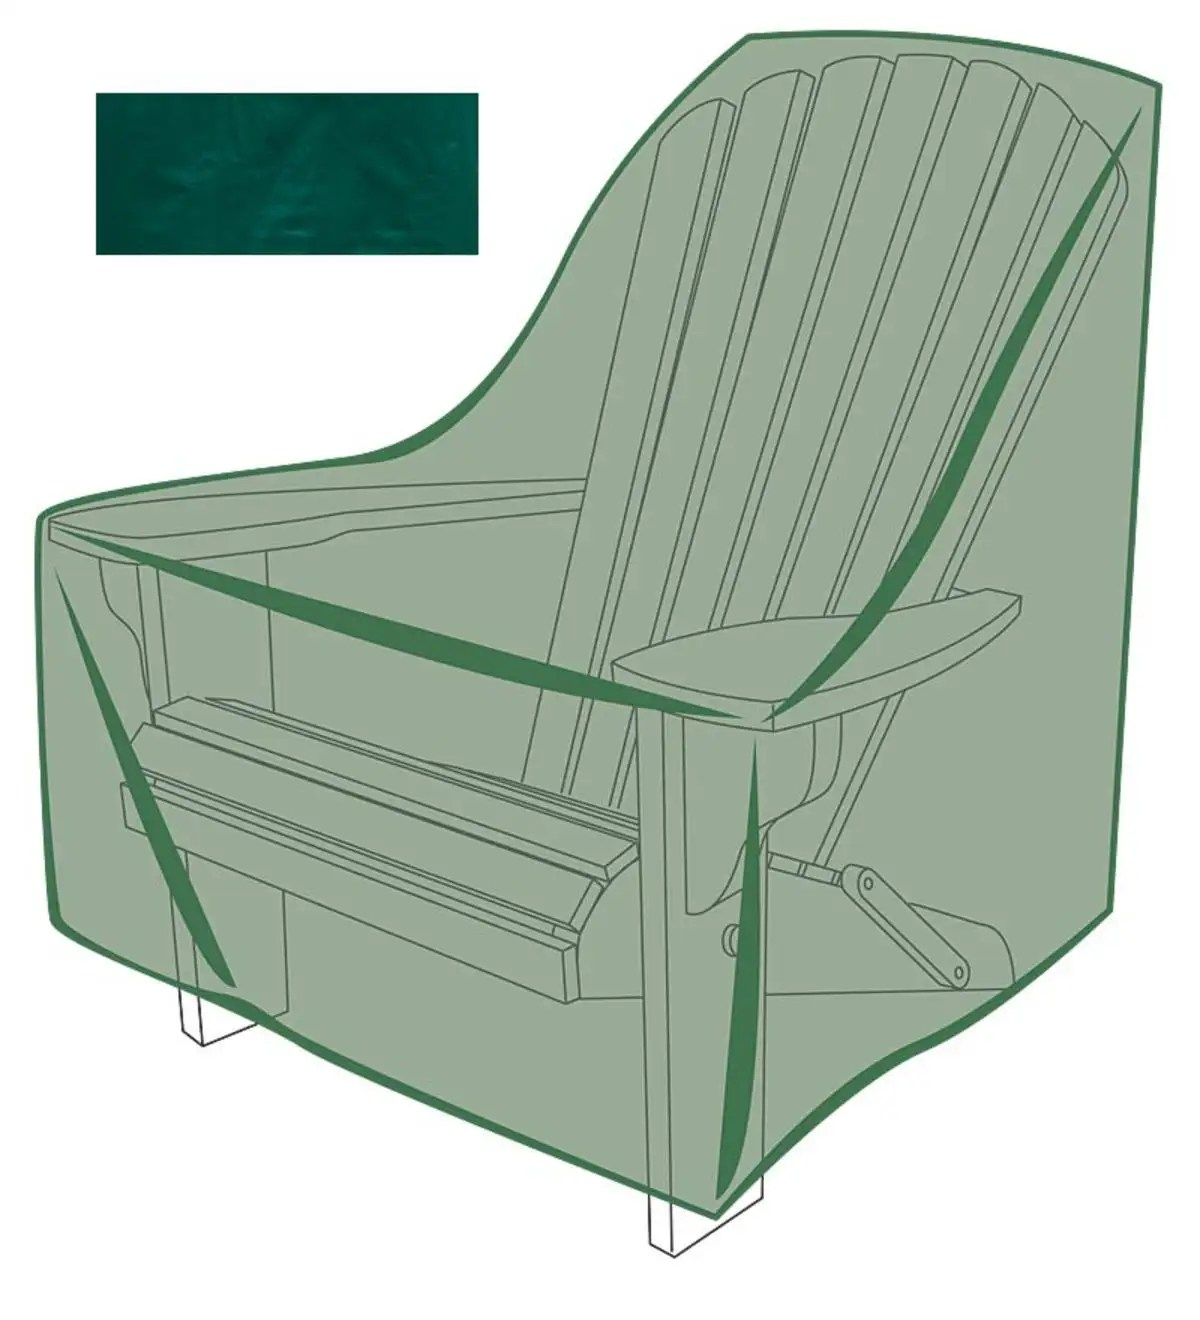 Outdoor Covers Outdoor Furniture Cover For Adirondack Chair Plowhearth